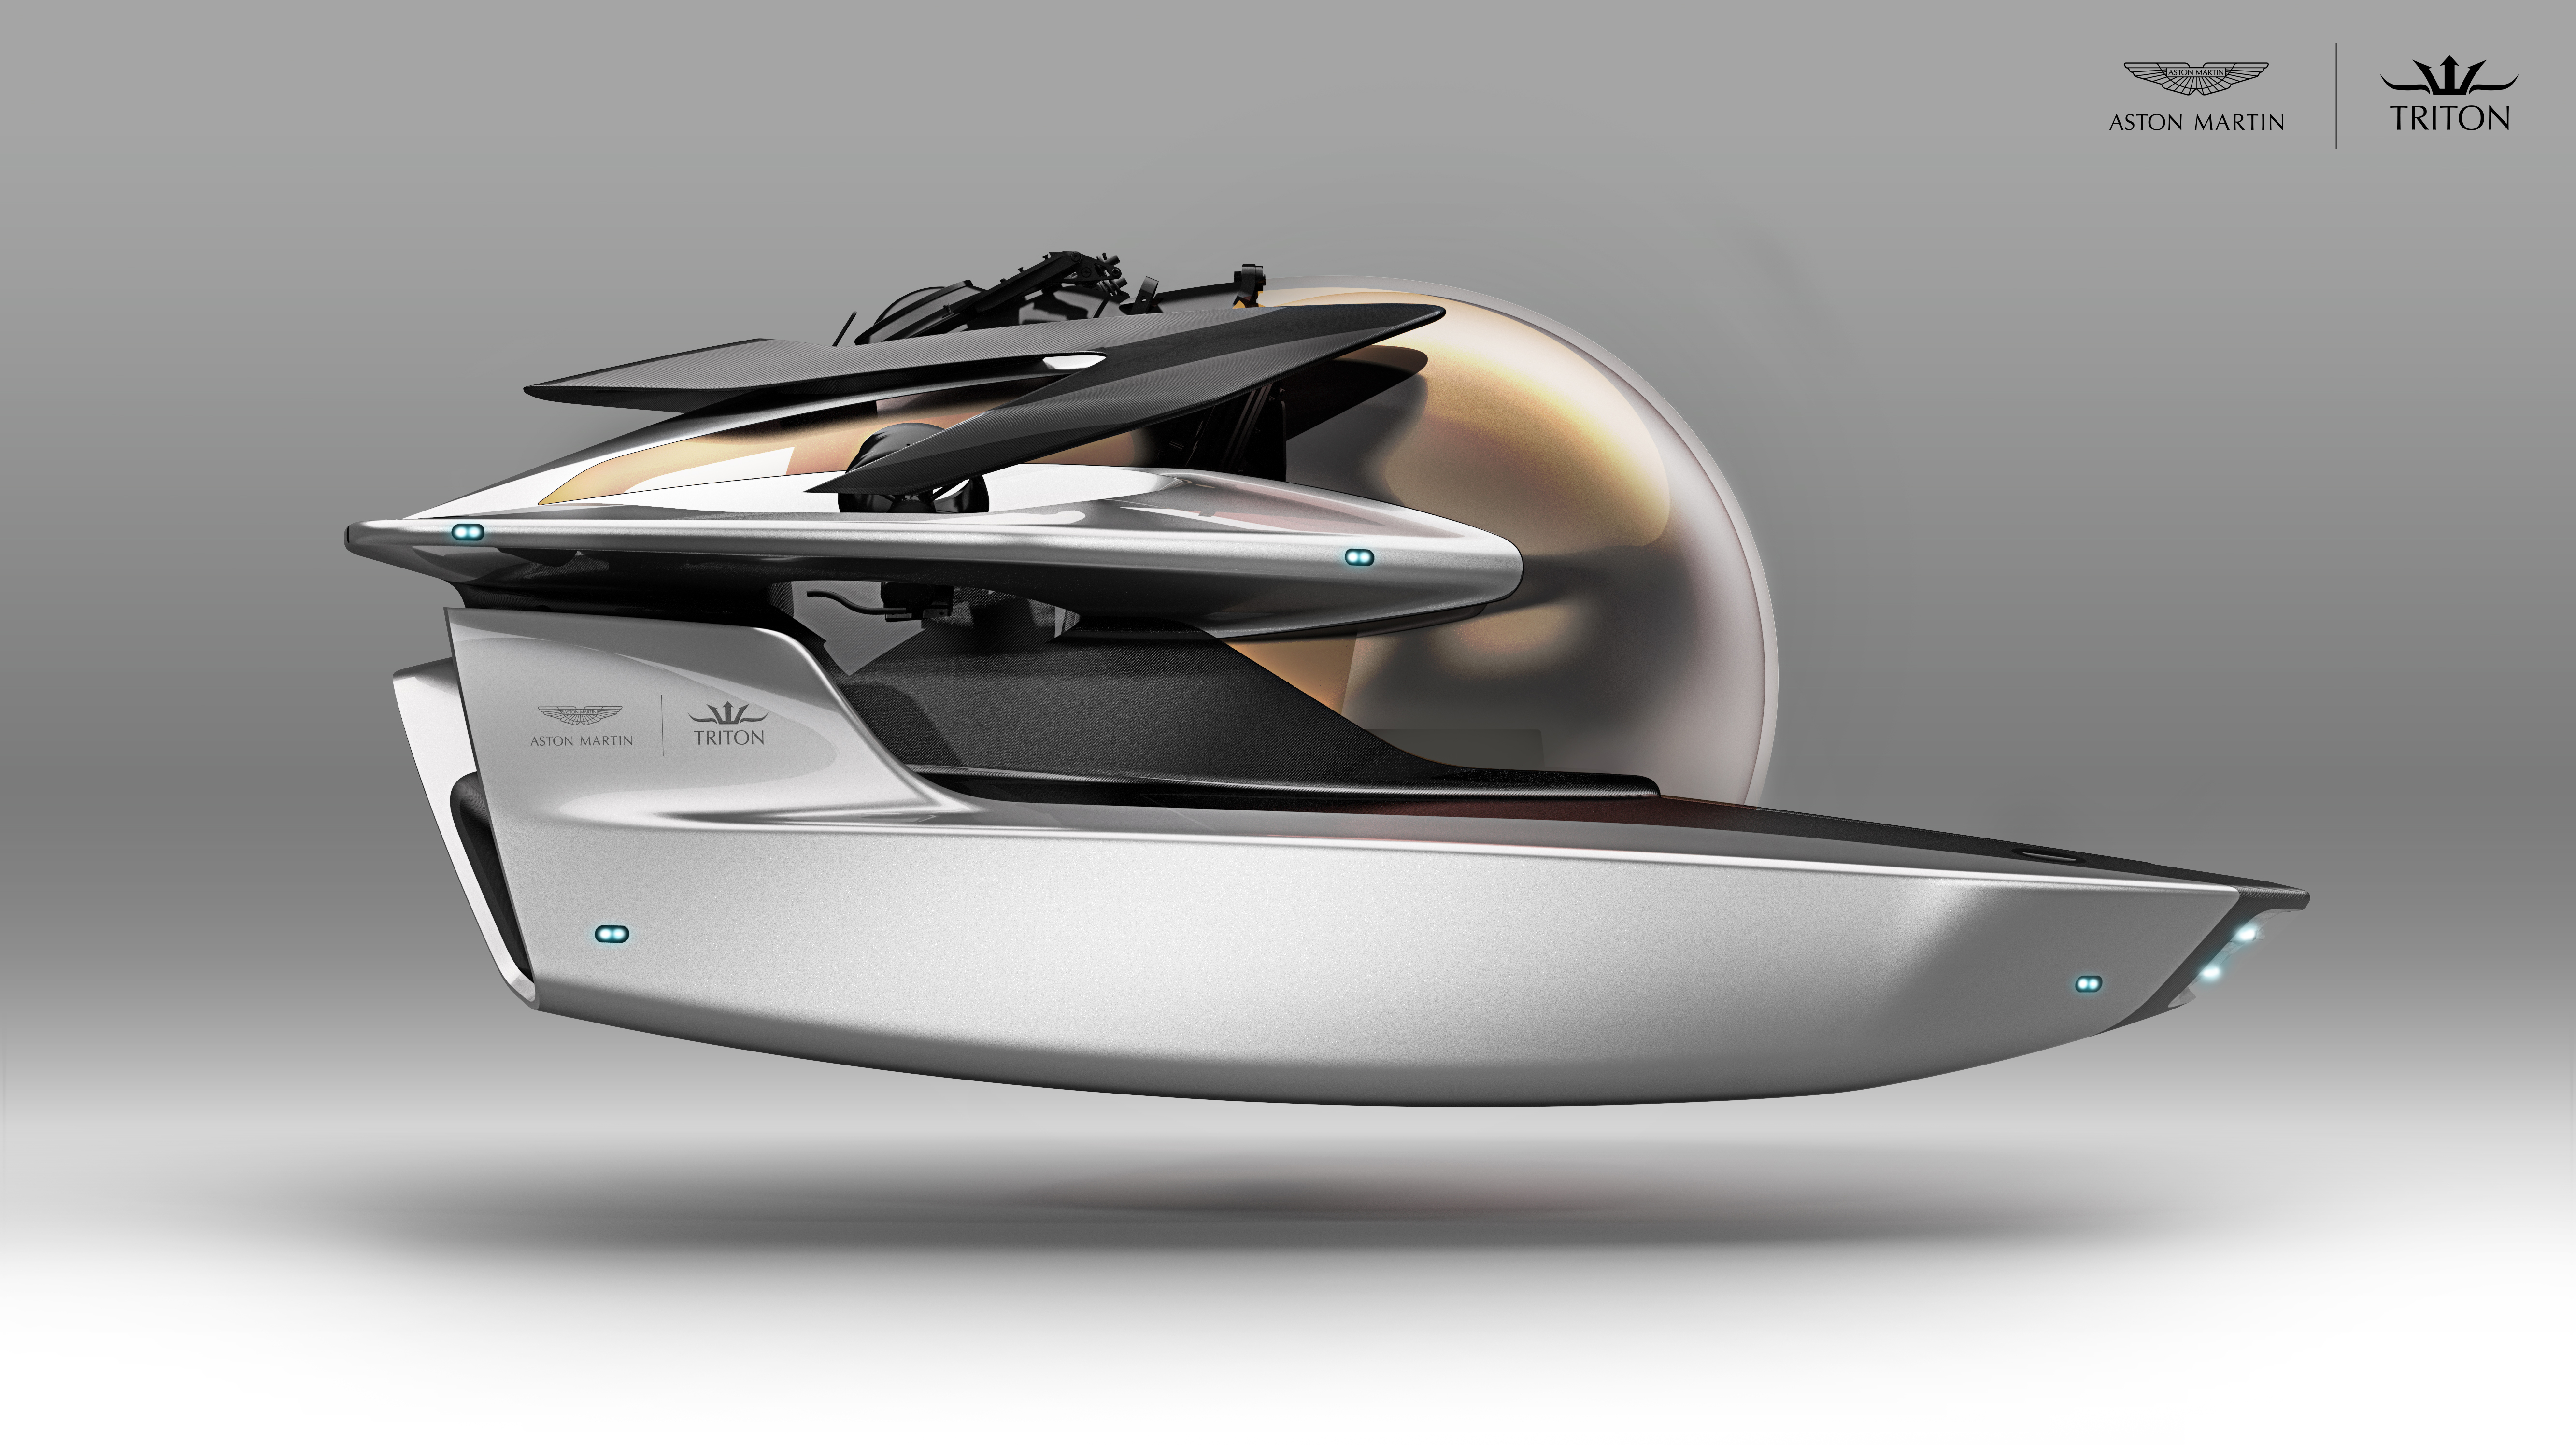 Aston Martin s limited edition submarine is totally my next car